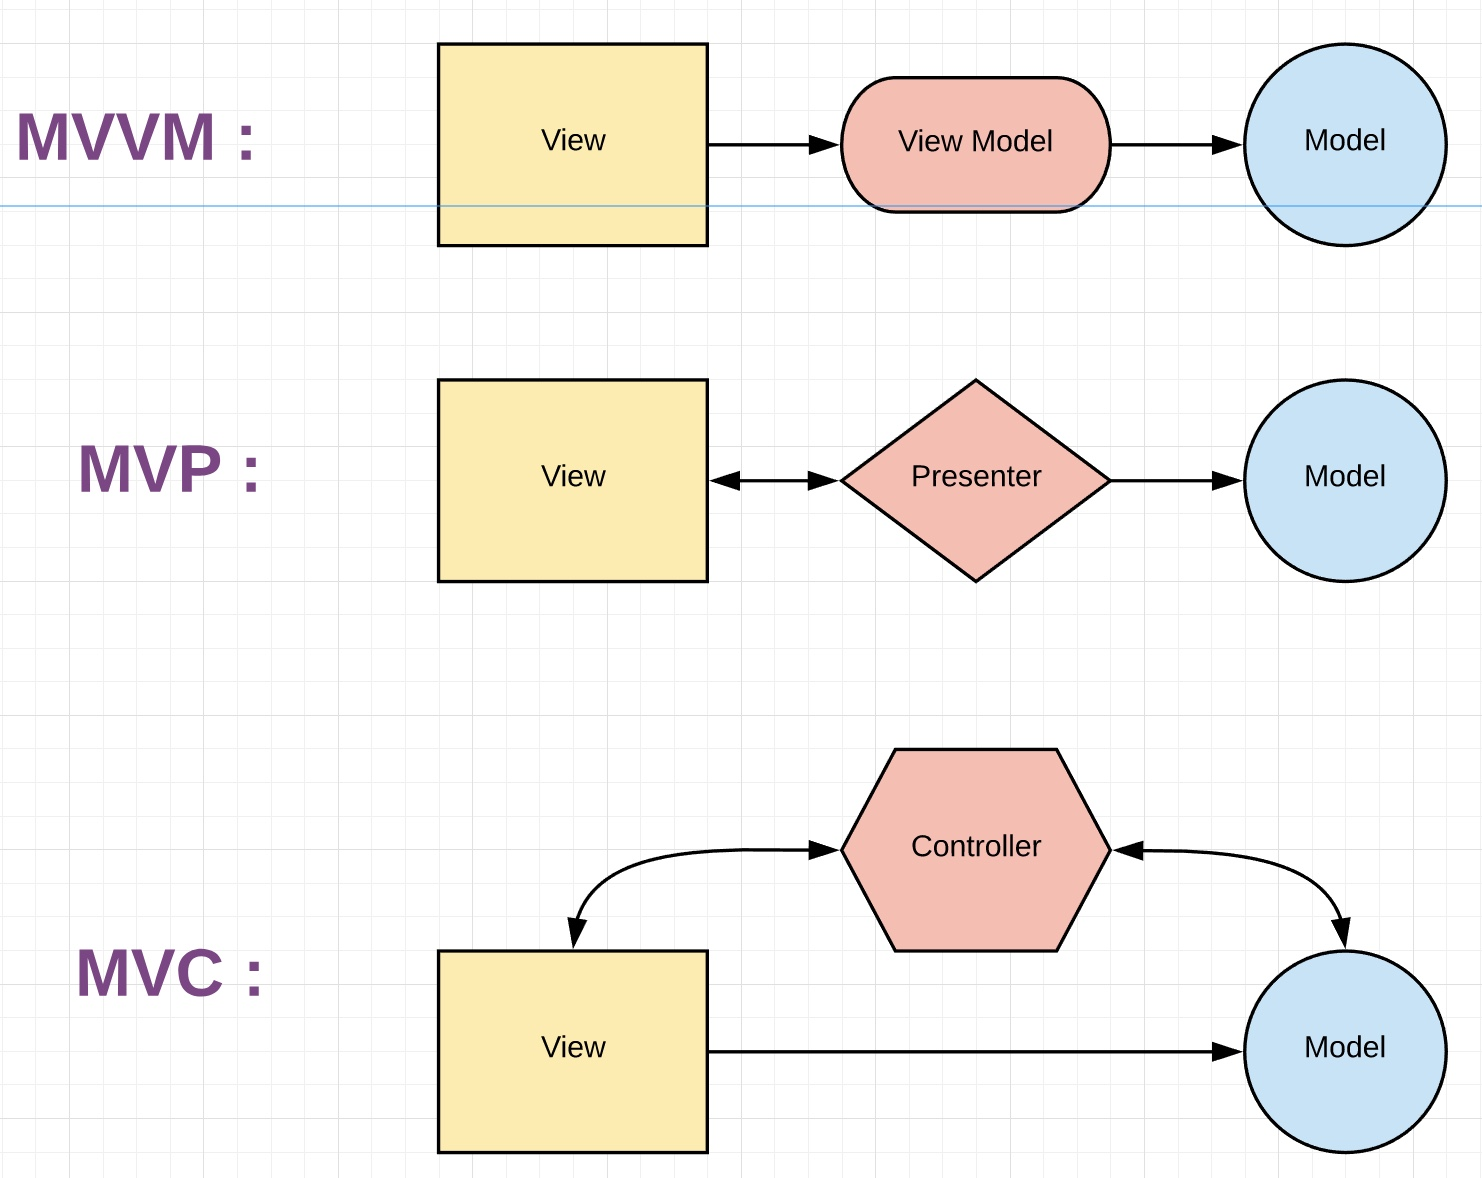 android architecture: Part 4: MVVM with RxJava - DigiGene